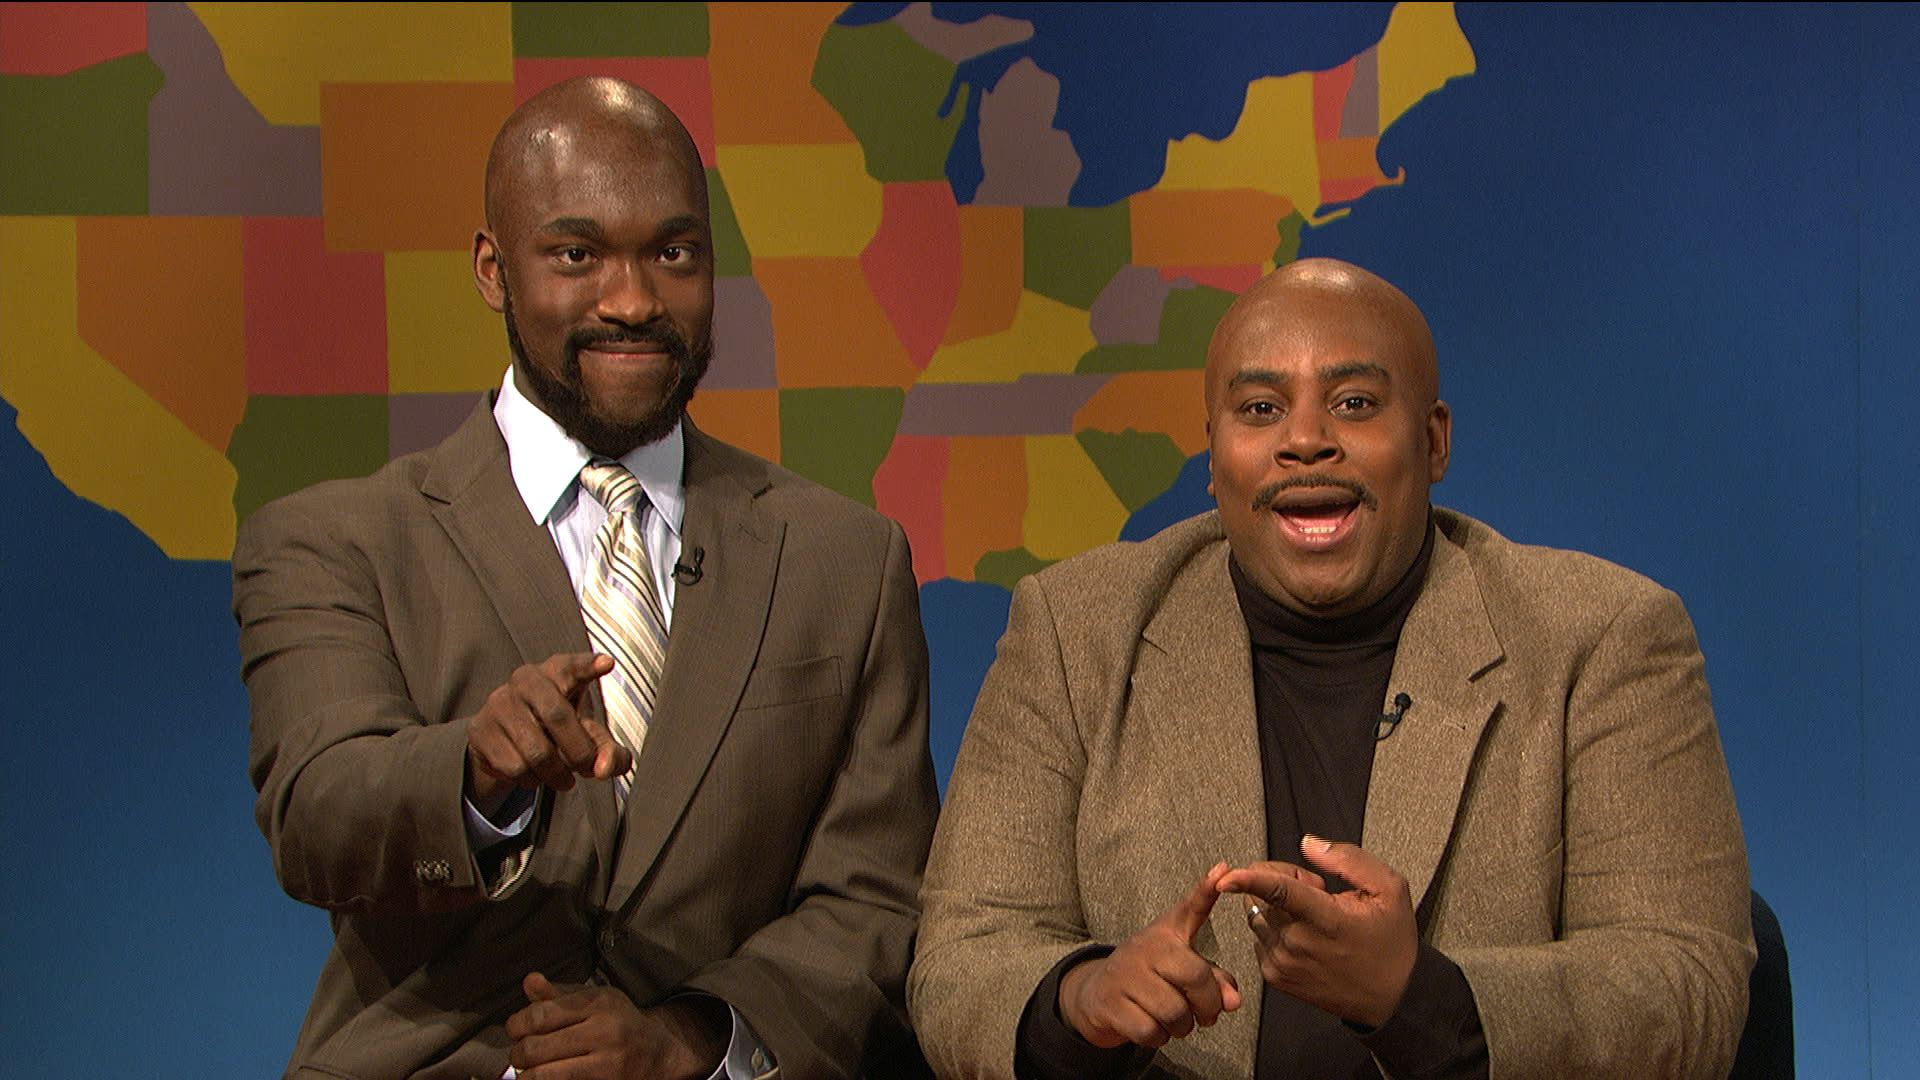 watch weekend update charles barkley and shaquille o 39 neal. Black Bedroom Furniture Sets. Home Design Ideas